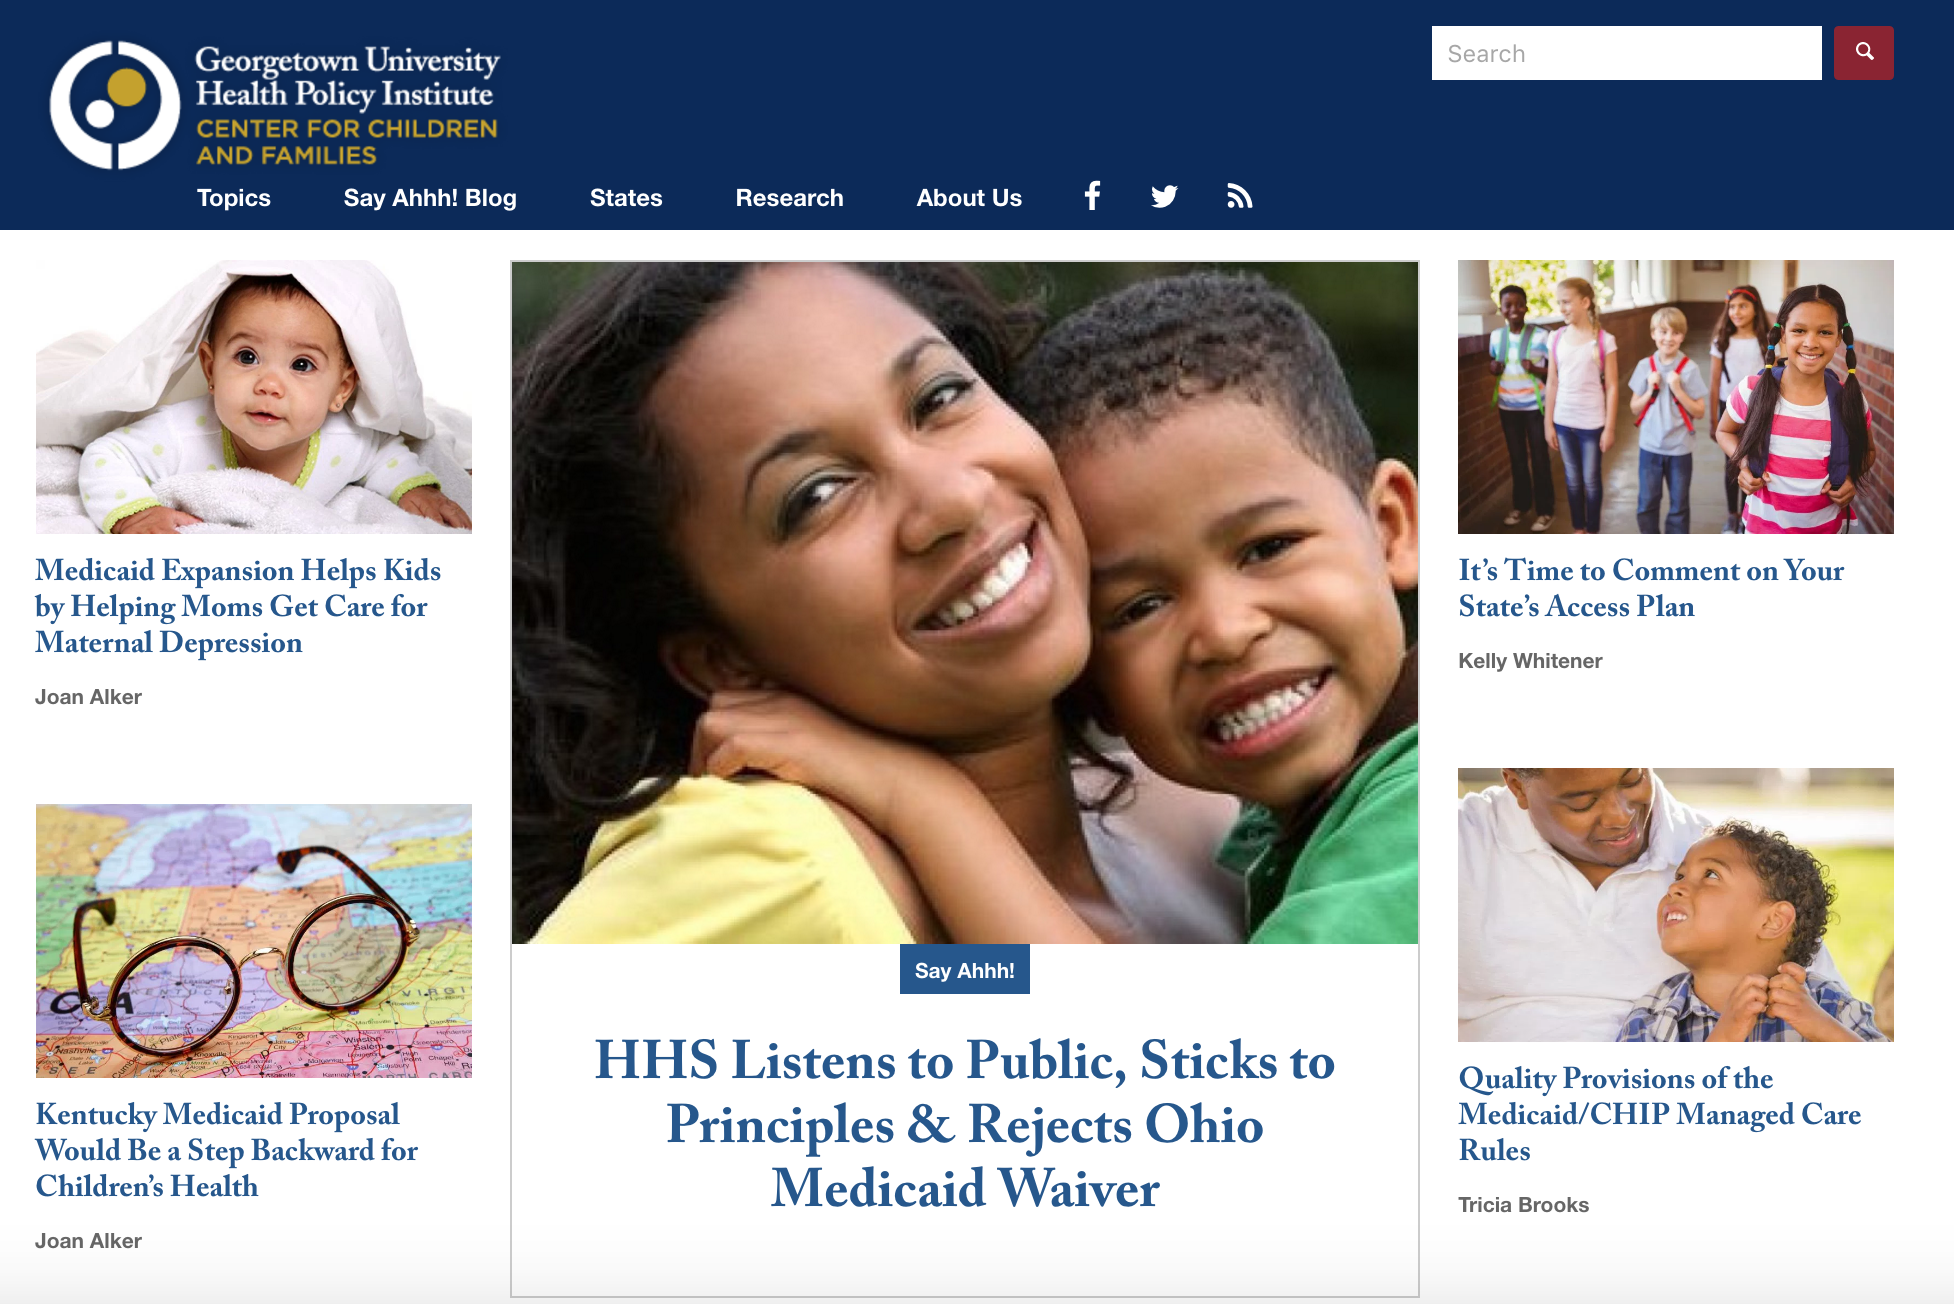 A screenshot of the Georgetown home page, with a blue header and navigation bar at the top, one main featured article and image in the middle of the page surrounded by four smaller articles and images